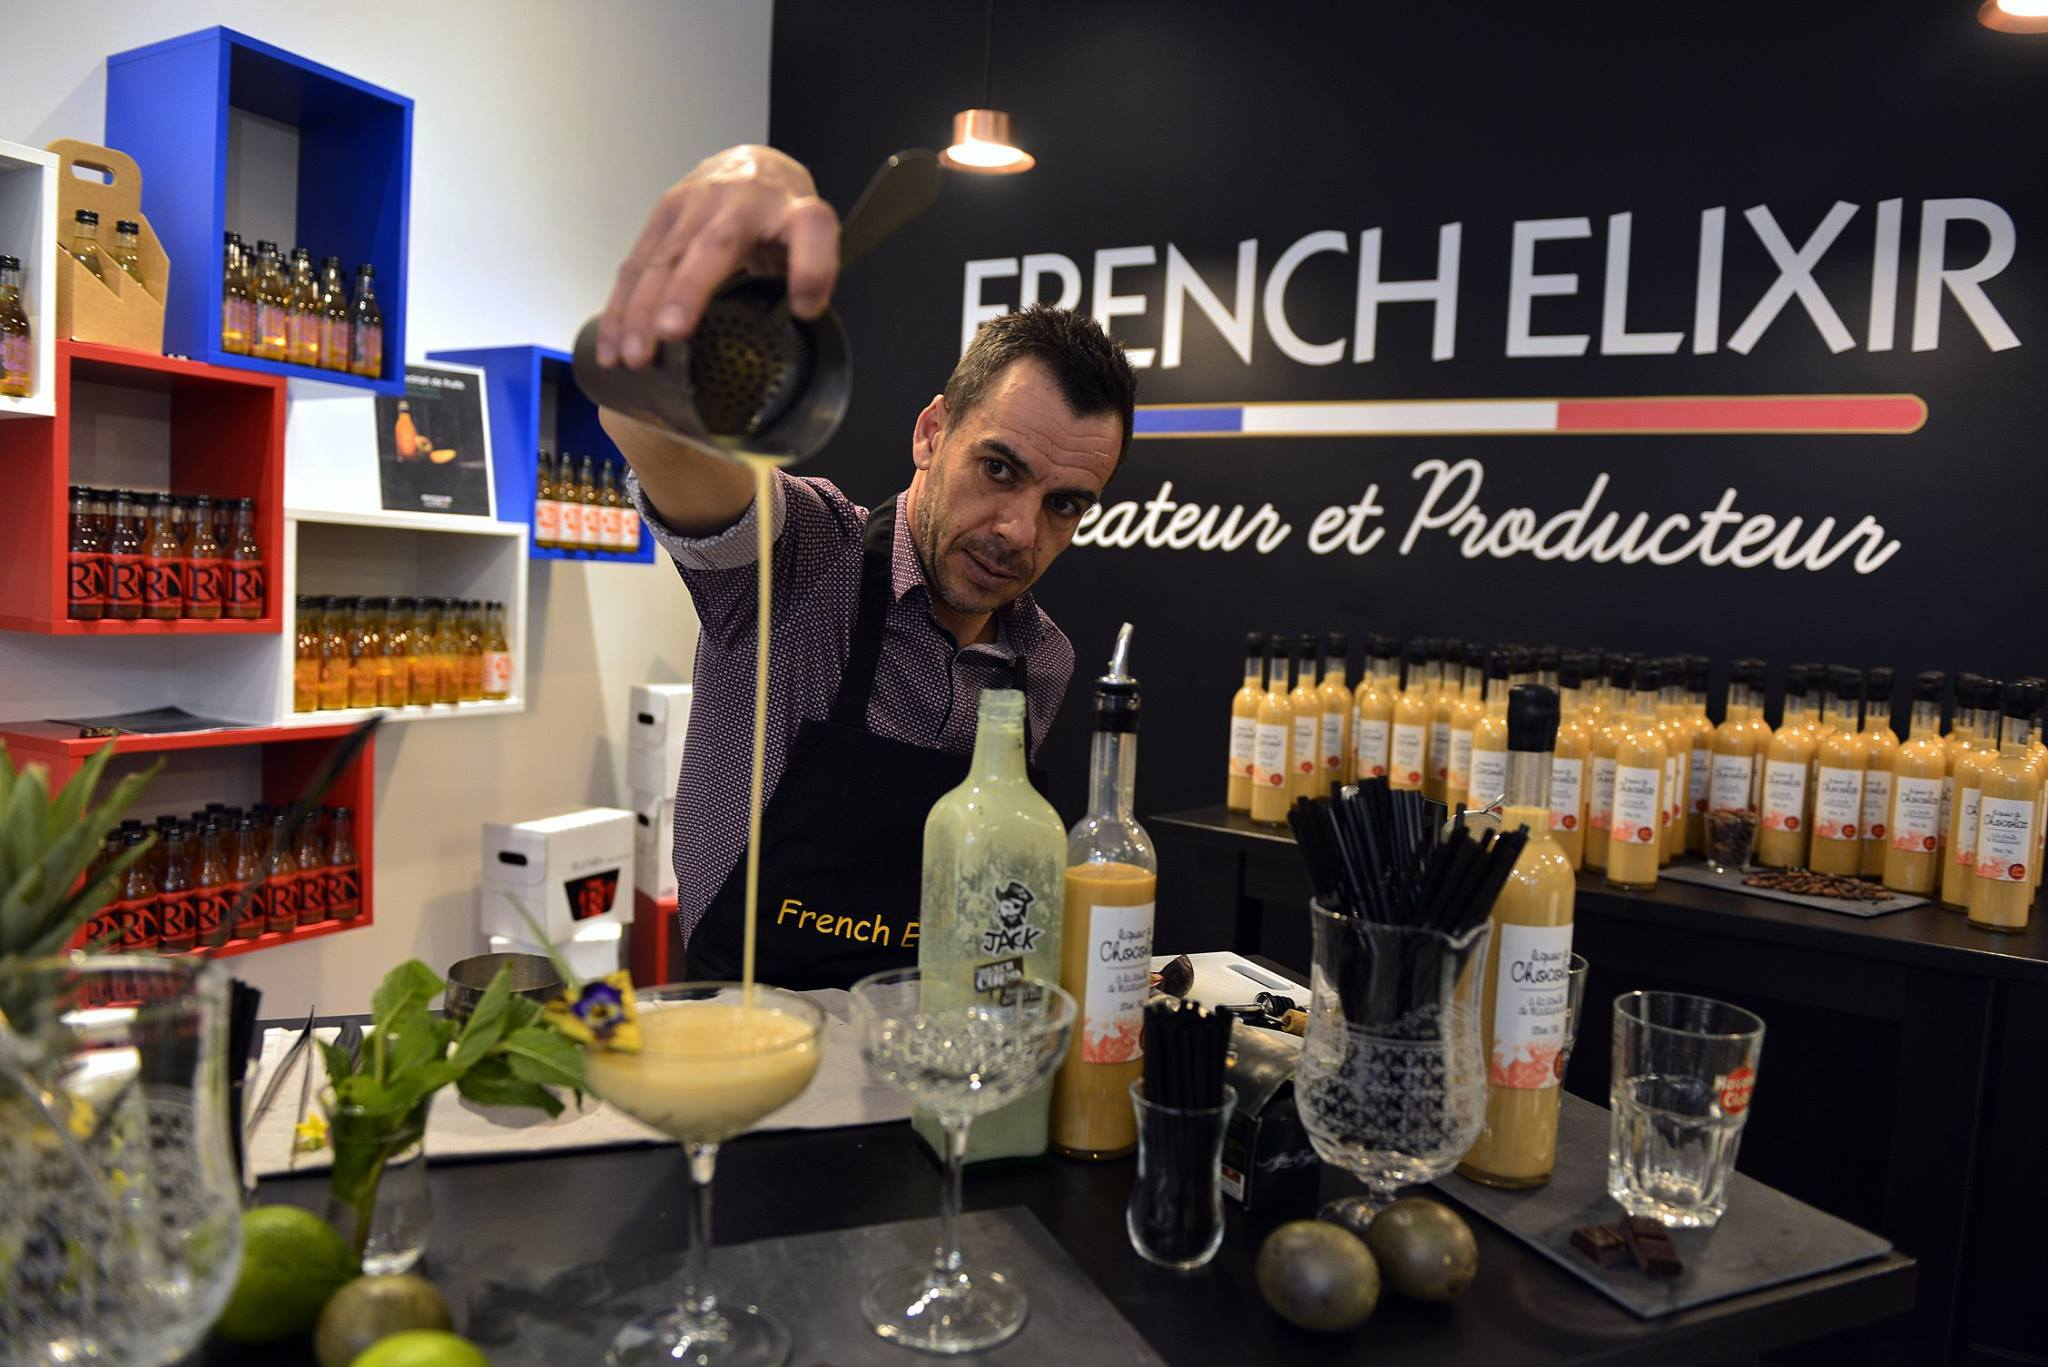 Galerie d'image - FRENCH ELIXIR